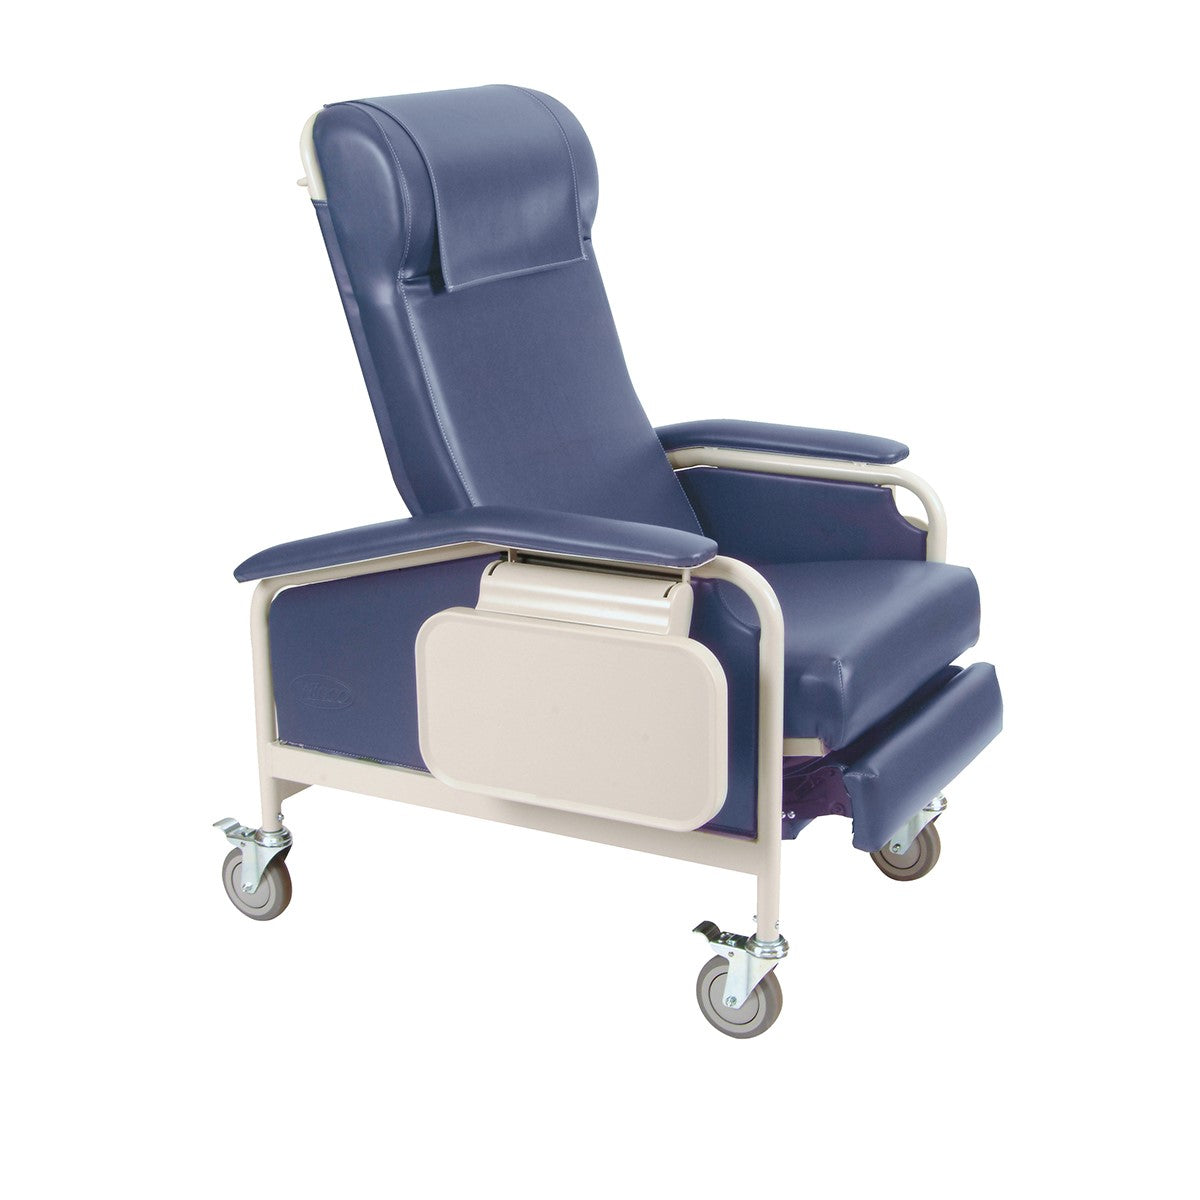 Winco_6530_Care_Cliner.jpg